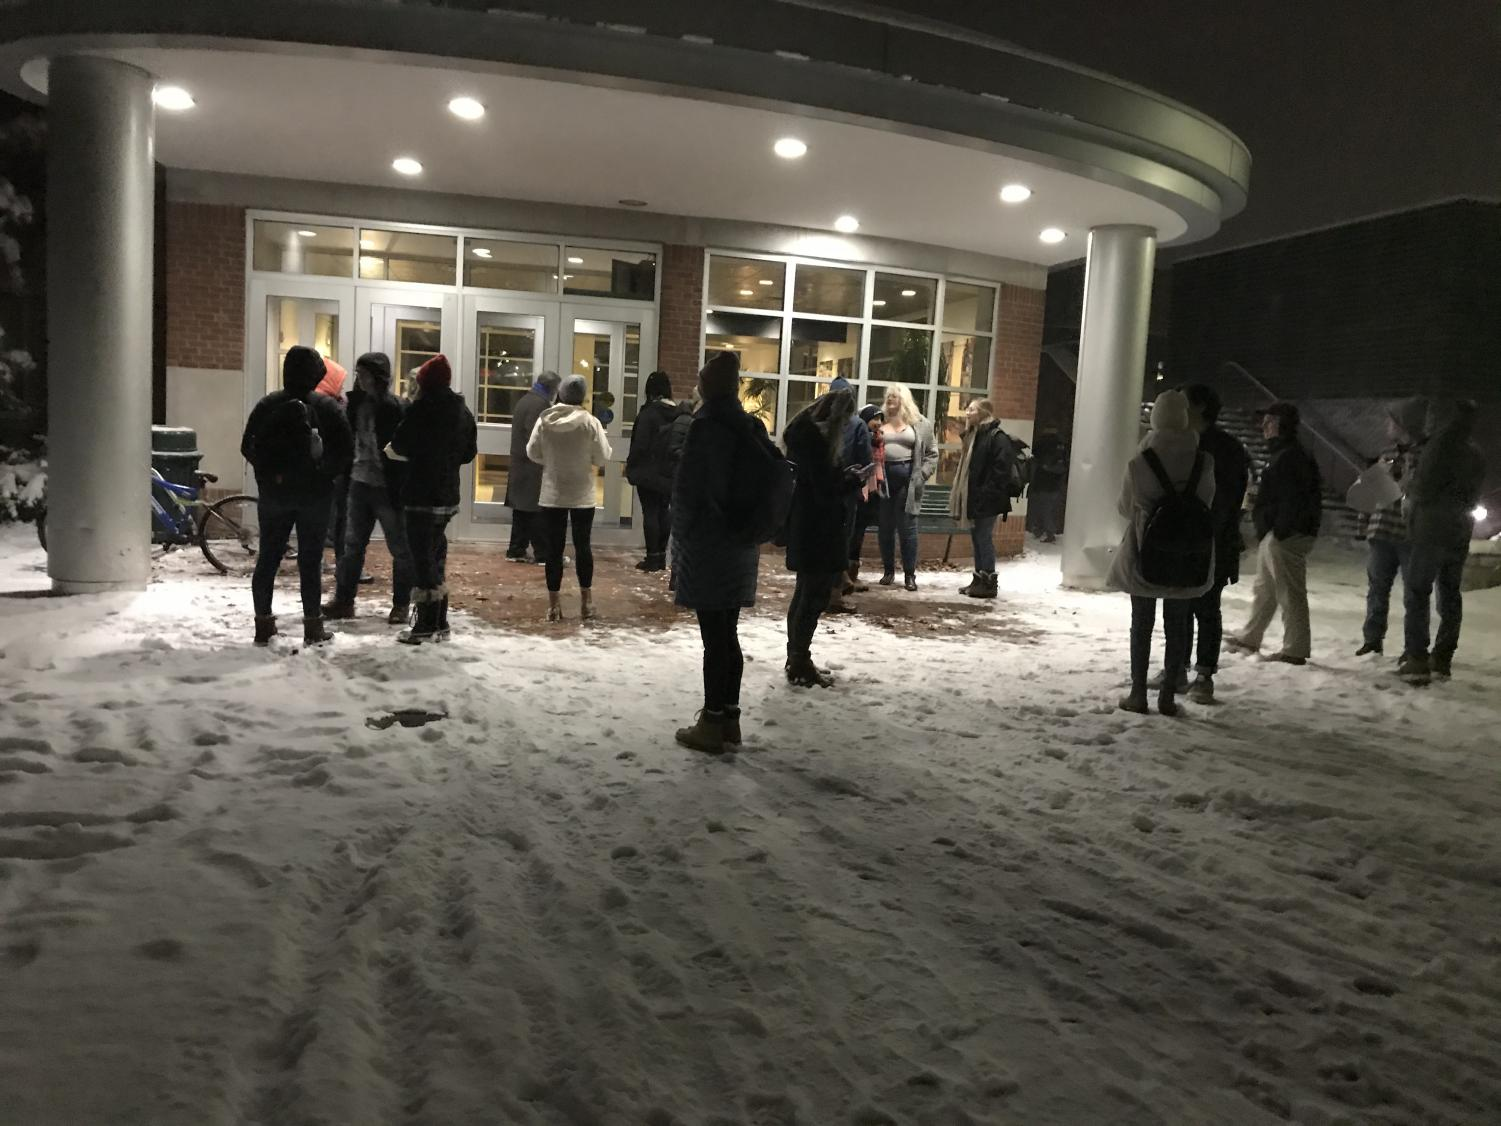 Students wait outside the Henderson Campus Center after a fire alarm delayed Allegheny Student Government's meeting on Tuesday, Nov. 13.